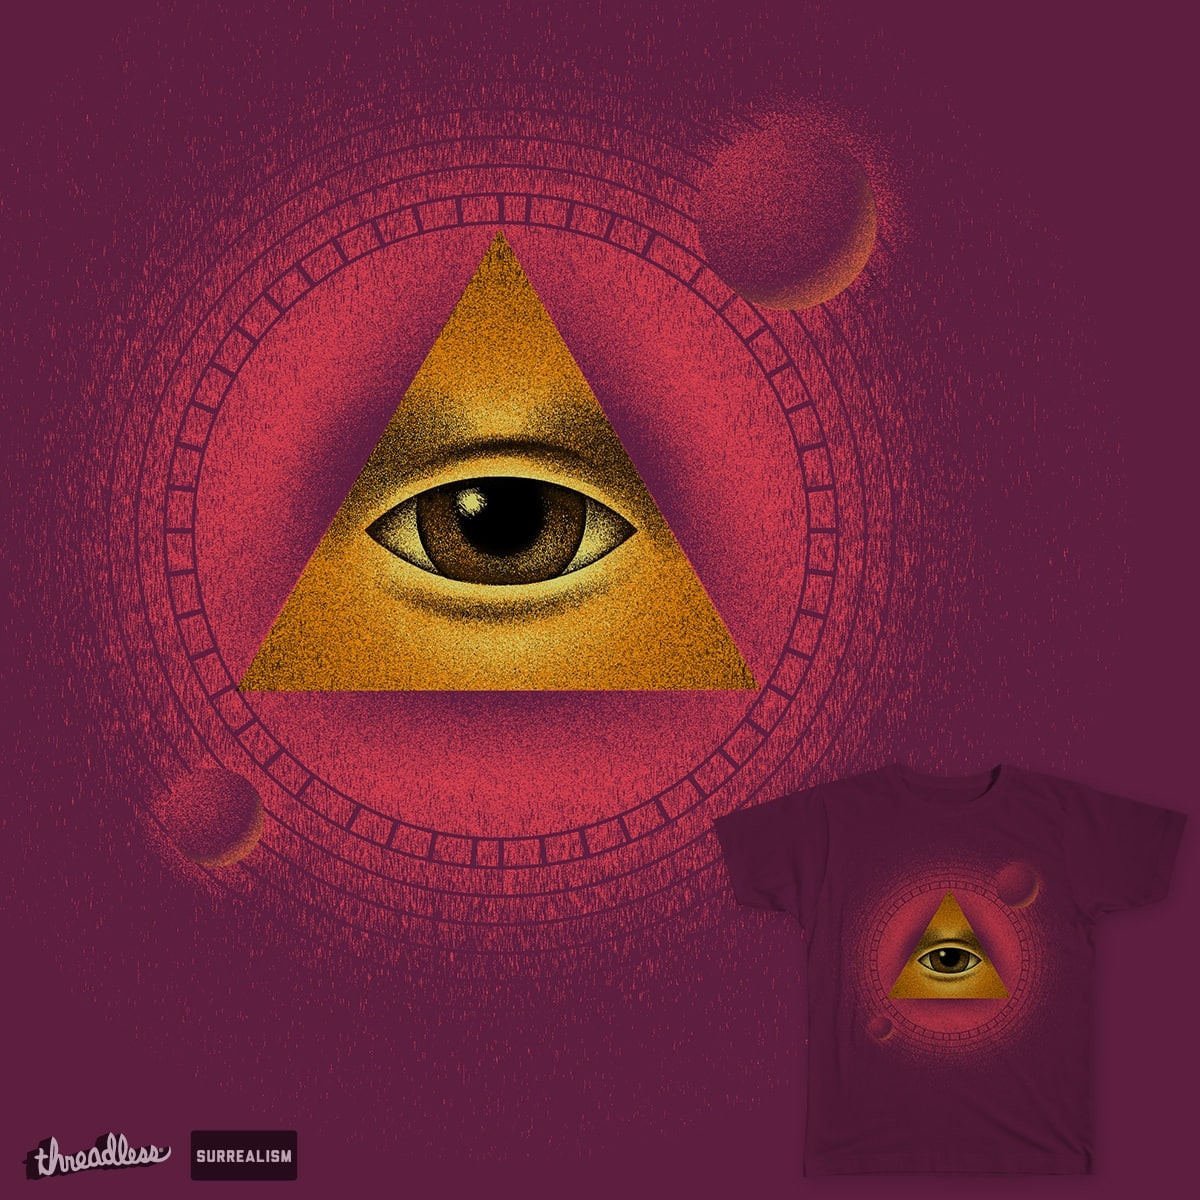 I am the eye in the sky by arsmephisto on Threadless